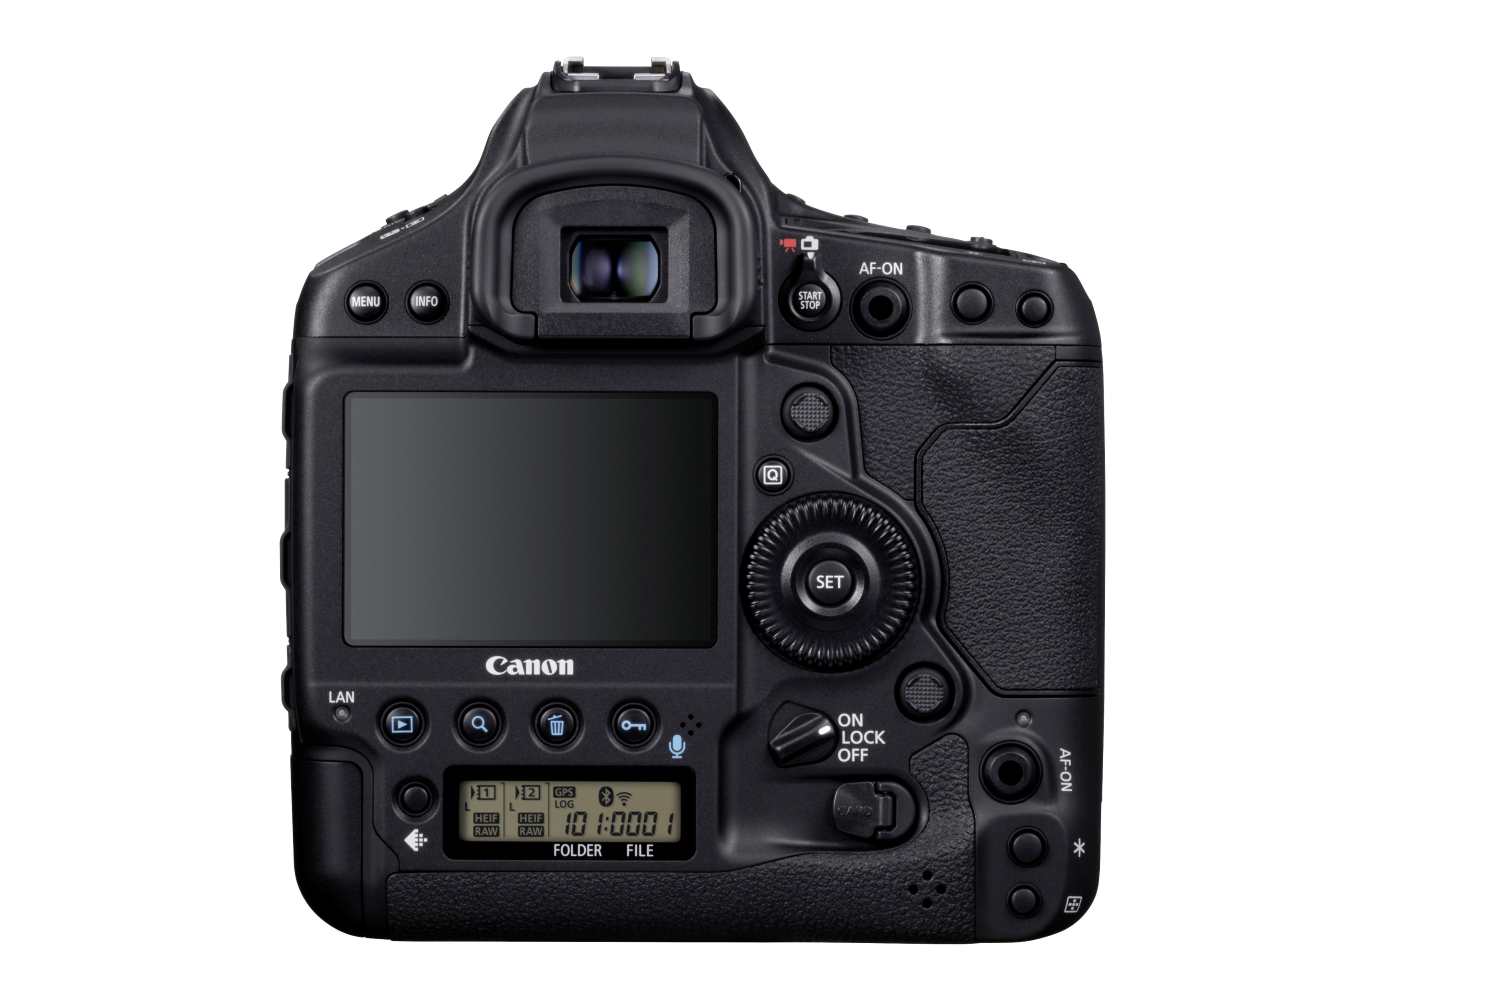 https://i1.wp.com/digital-photography-school.com/wp-content/uploads/2020/01/Canon-1DX-Mark-III.jpg?resize=1500%2C1000&ssl=1